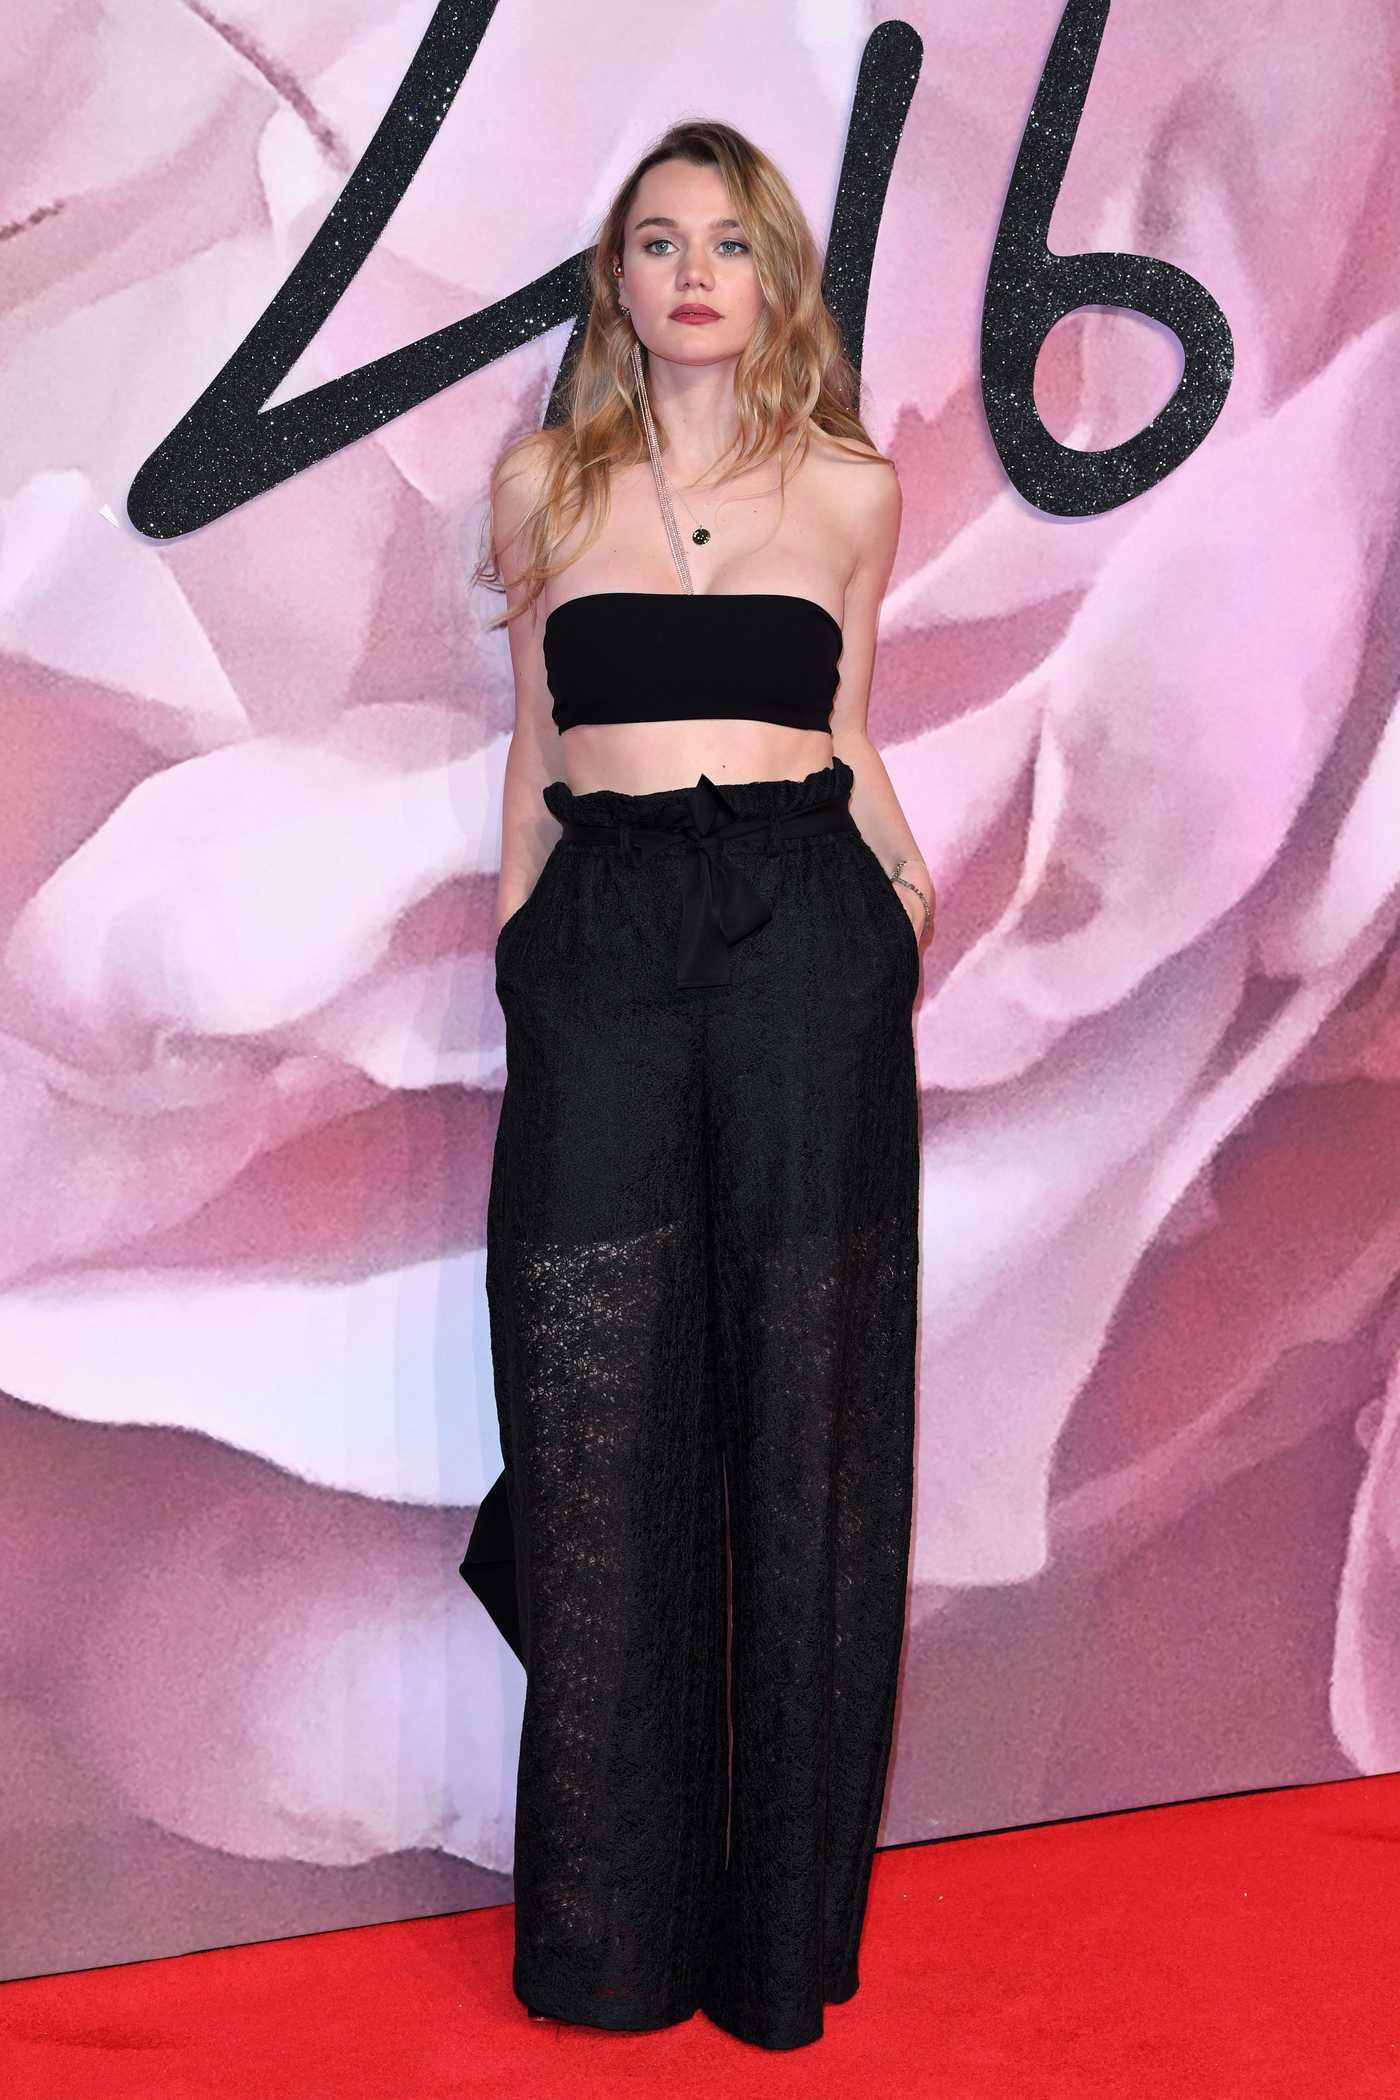 Immy Waterhouse at the 2016 Fashion Awards at Royal Albert Hall in London 12/05/2016